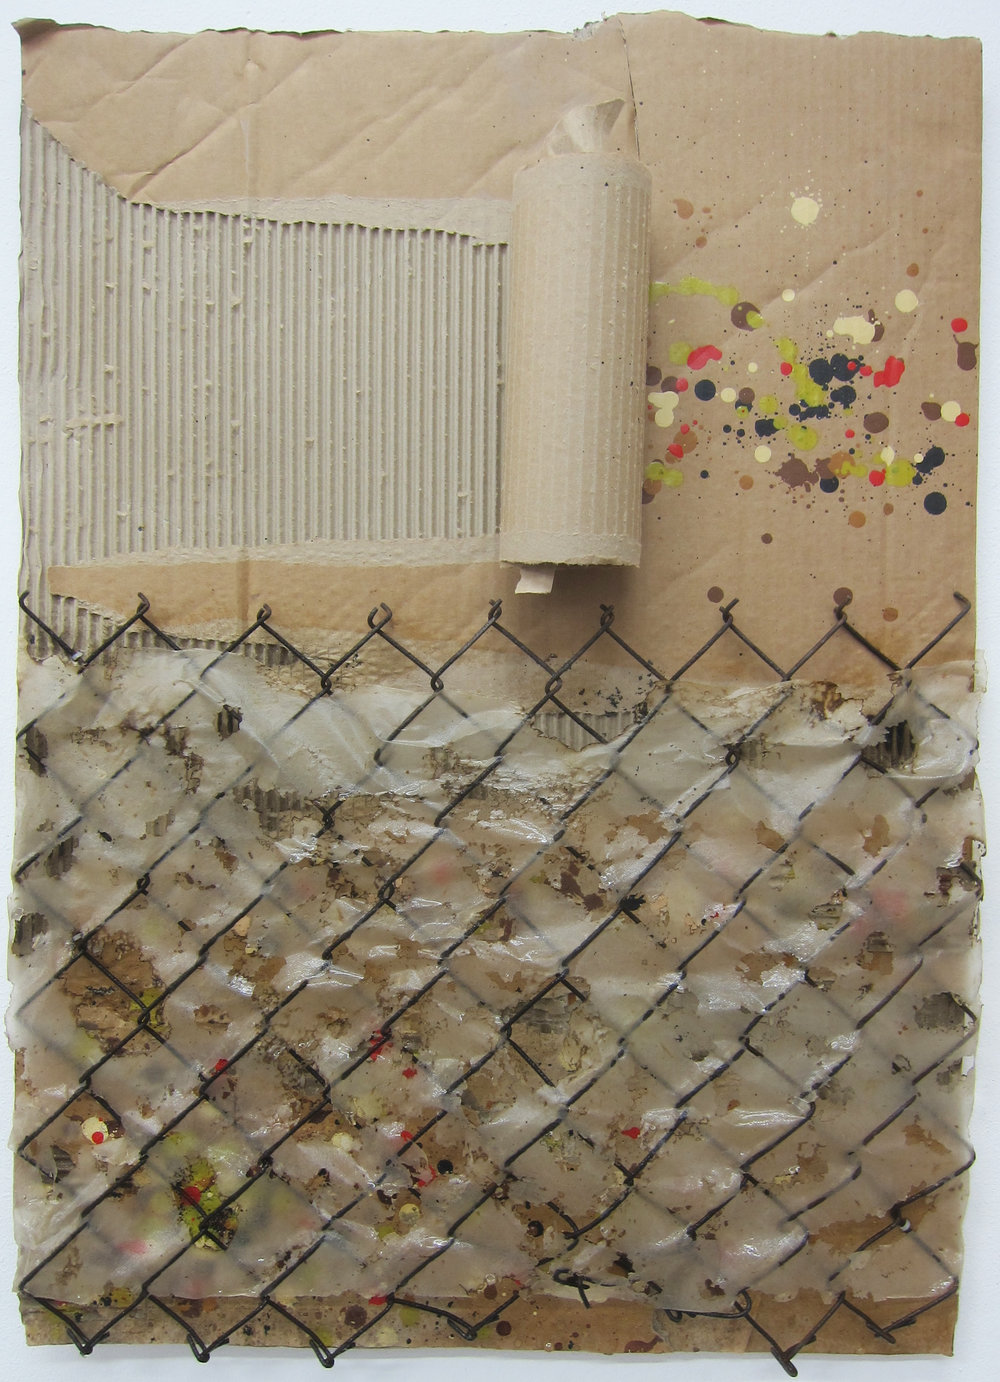 Air Speckle (R).    Cardboard, fence, paper, alkyd resin, fire and water.   80 x 58 cm.  2015.